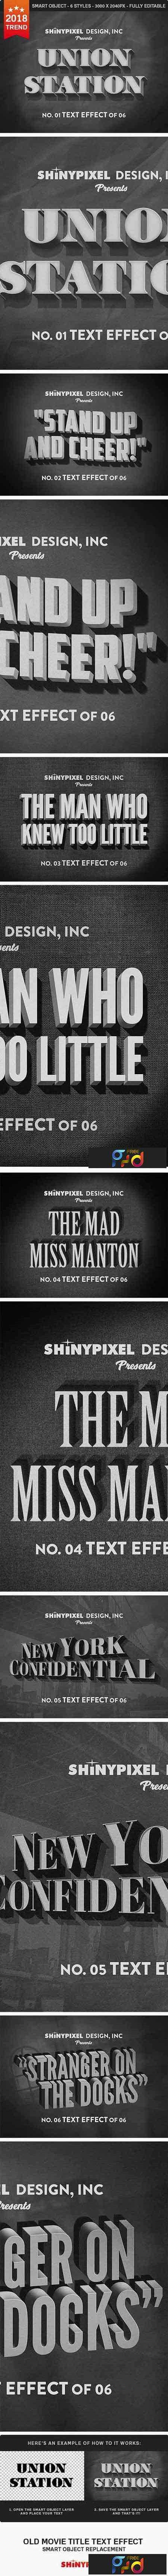 1707271 Old Movie Title - Text Effect 20961399 1